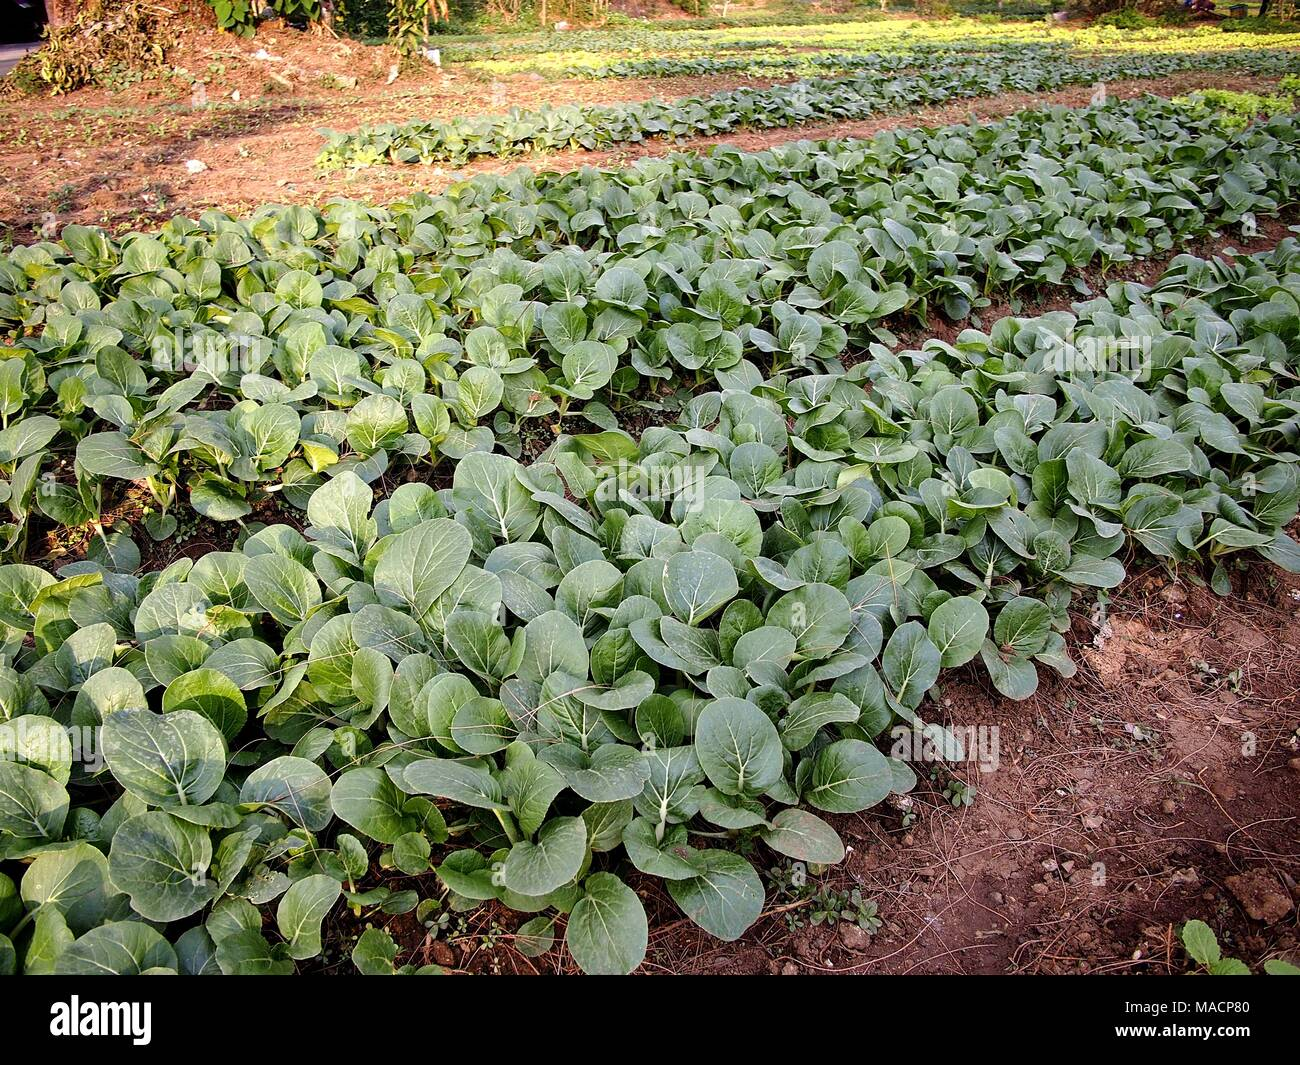 Photo of Pechay plant or Silverbeet - Stock Image